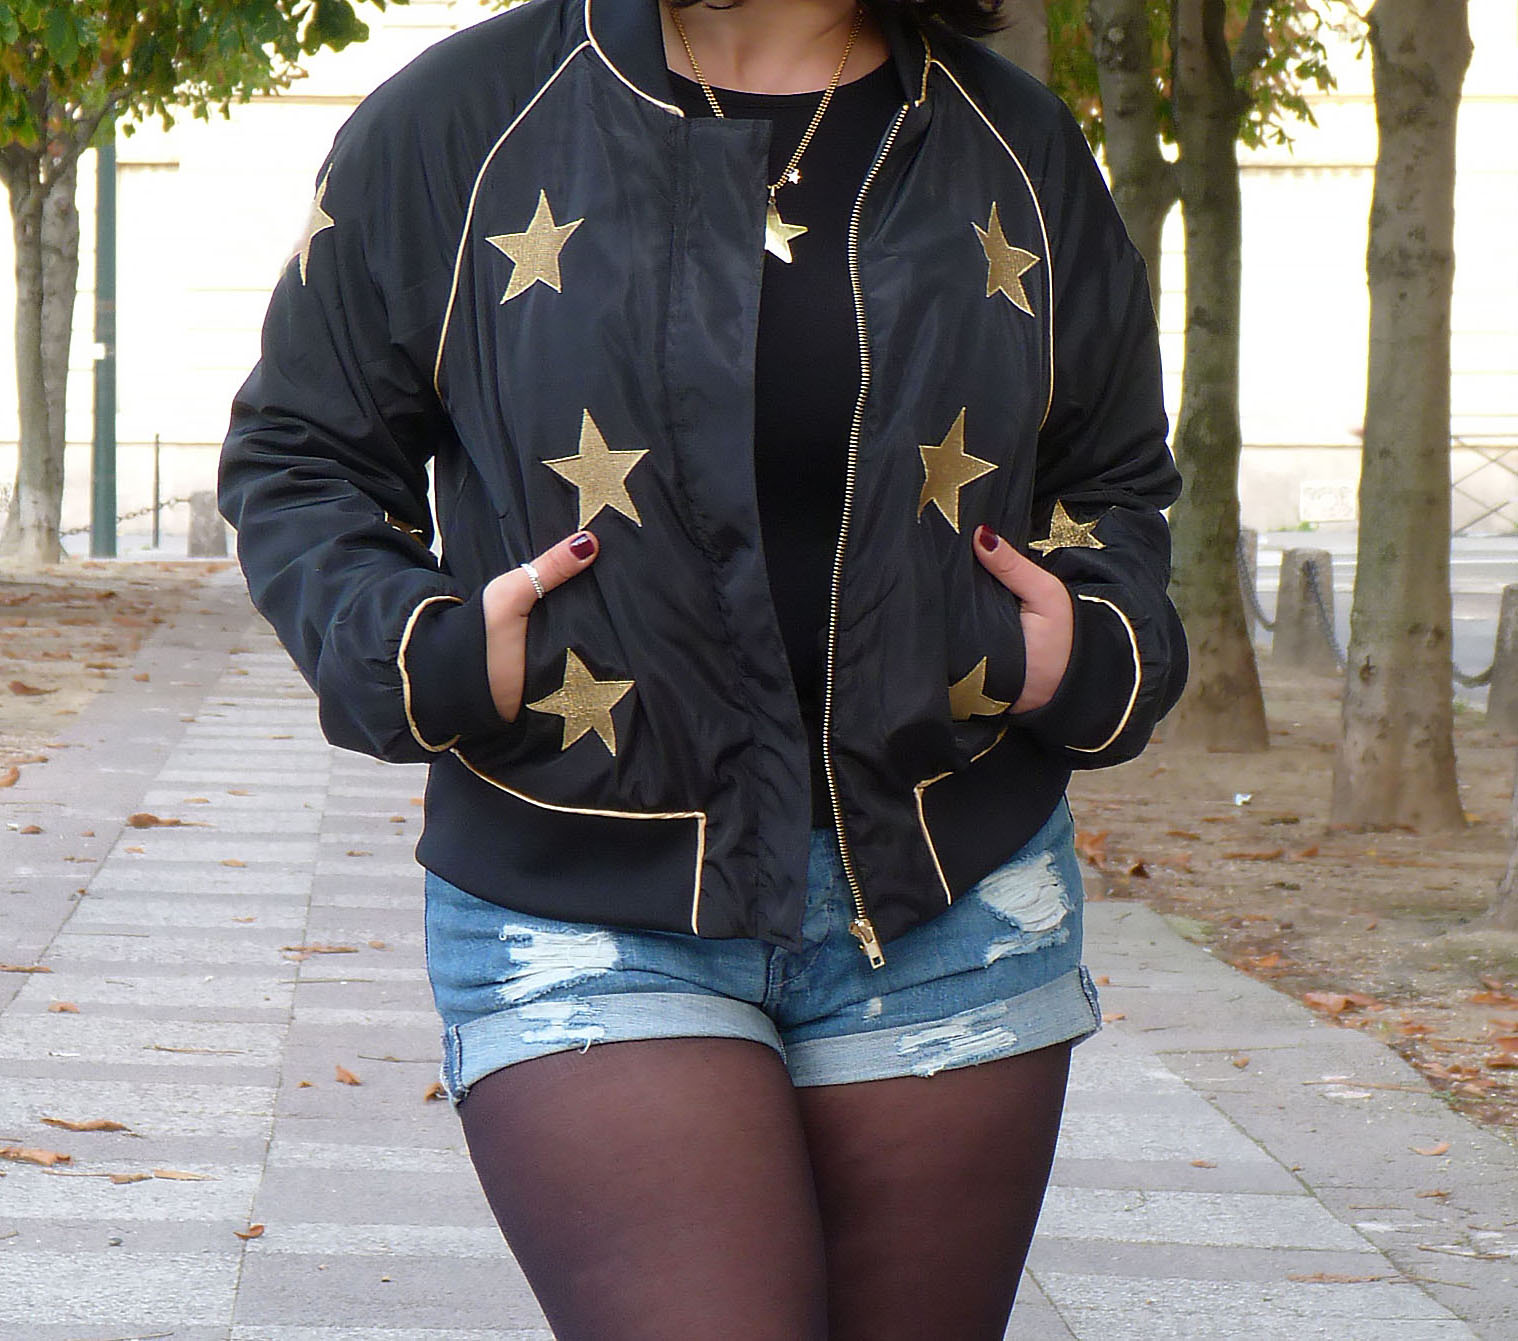 Star bomber - NA-KD Fashion (11)